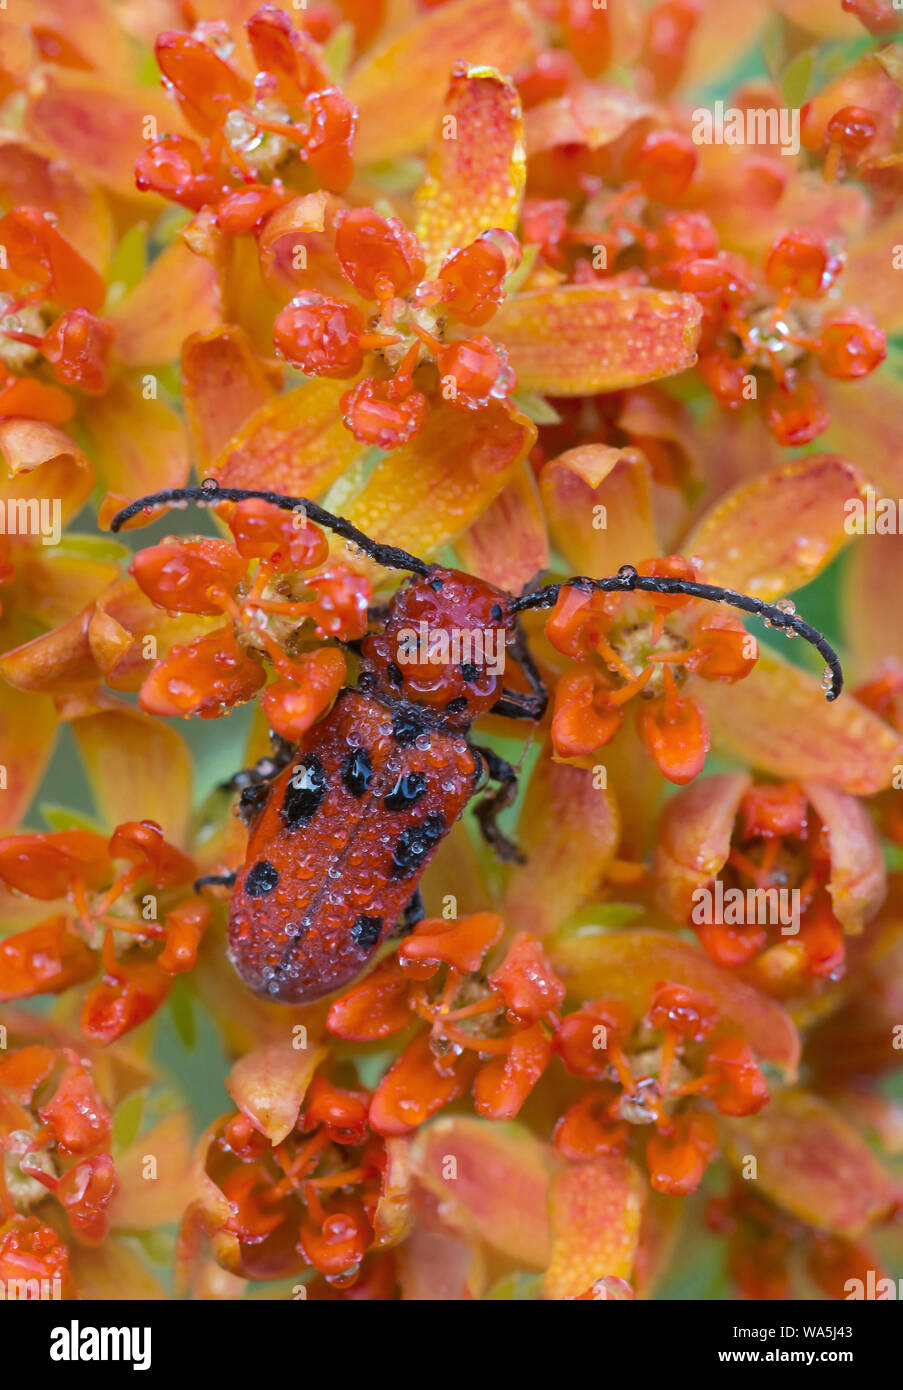 Dew-covered Red Milkweed Beetle (Tetraopes tetrophthalmus) on flowers of Butterfly Weed (Asclepias tuberosa),                     Eastern United State Stock Photo